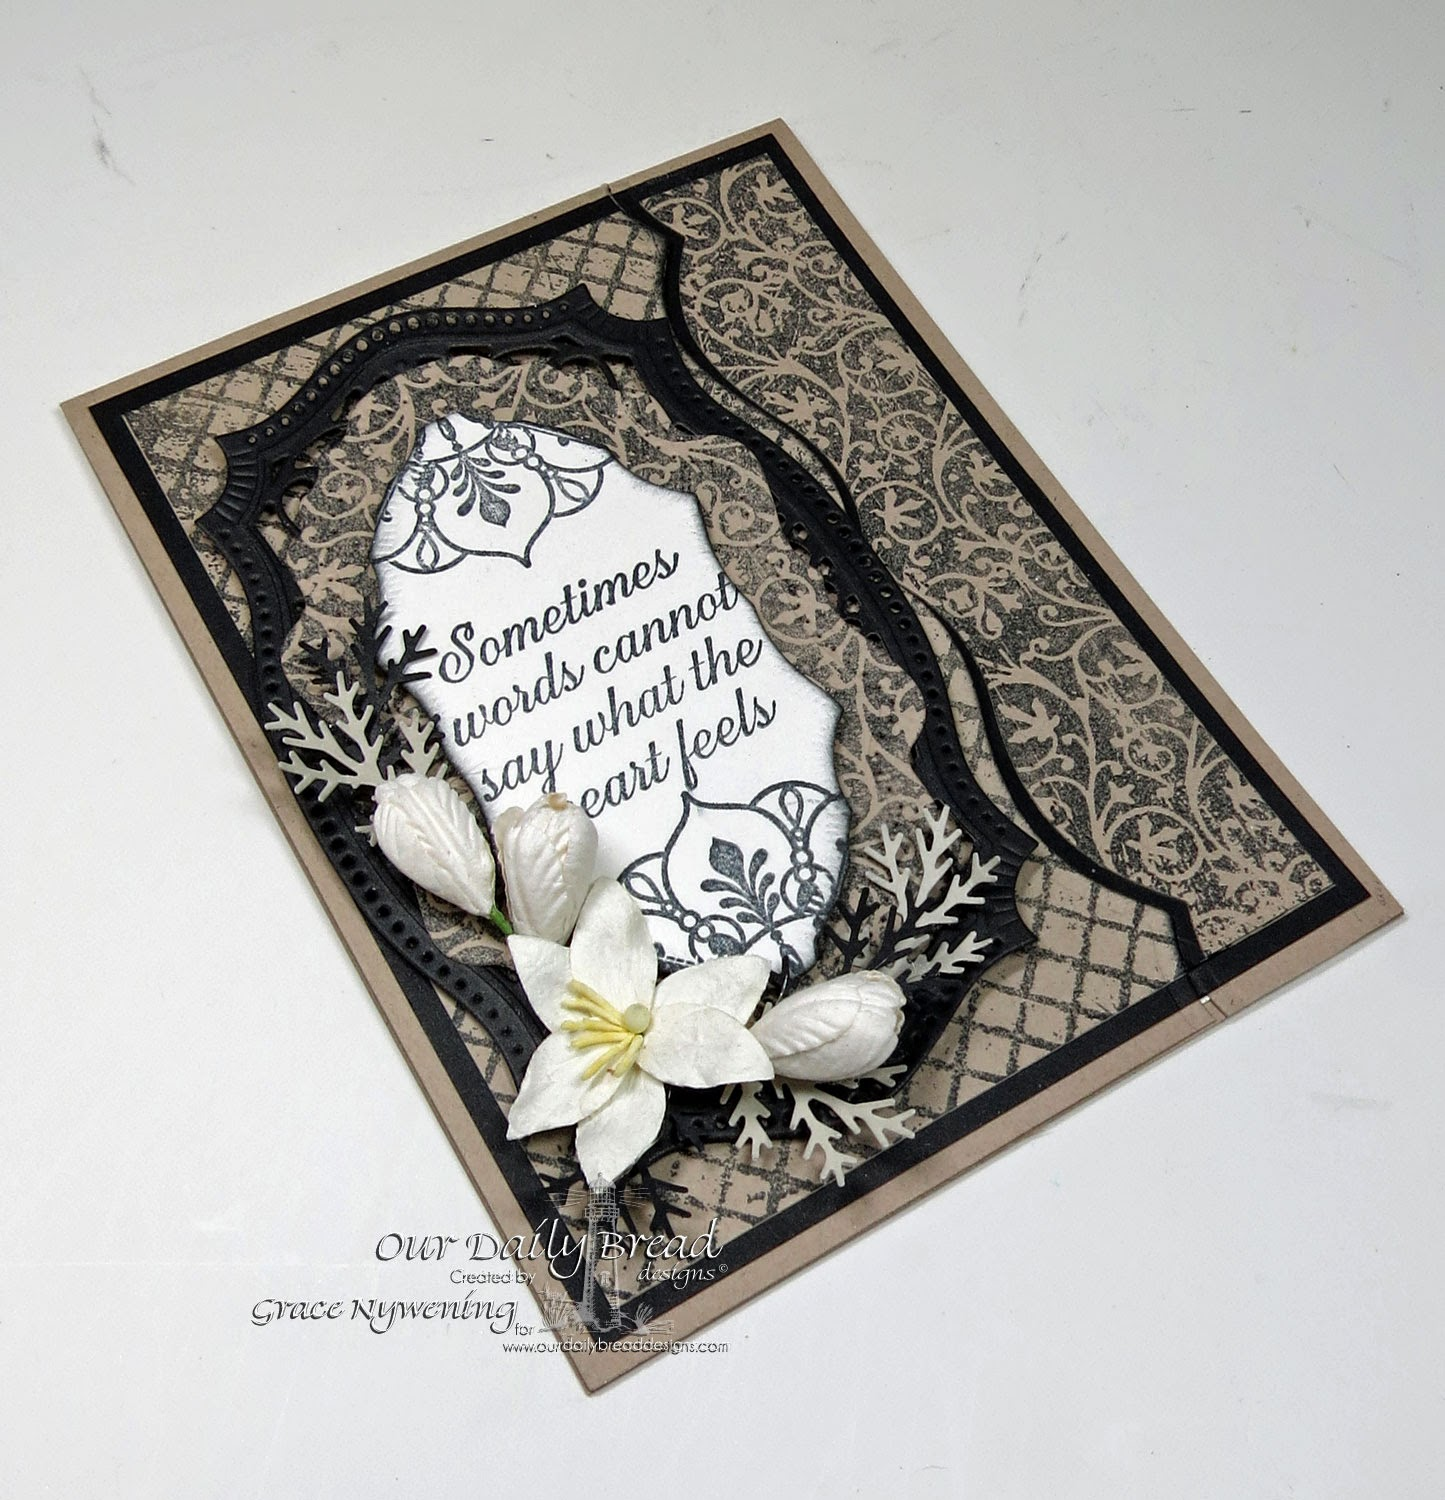 "Our Daily Bread designs stamps"" Chalkboard Vine Background, Chalkboard Lattice Background, No Words, Ornate Borders and Flowers, ODBD Vintage Flourish Pattern Dies, designed by Grace Nywening"